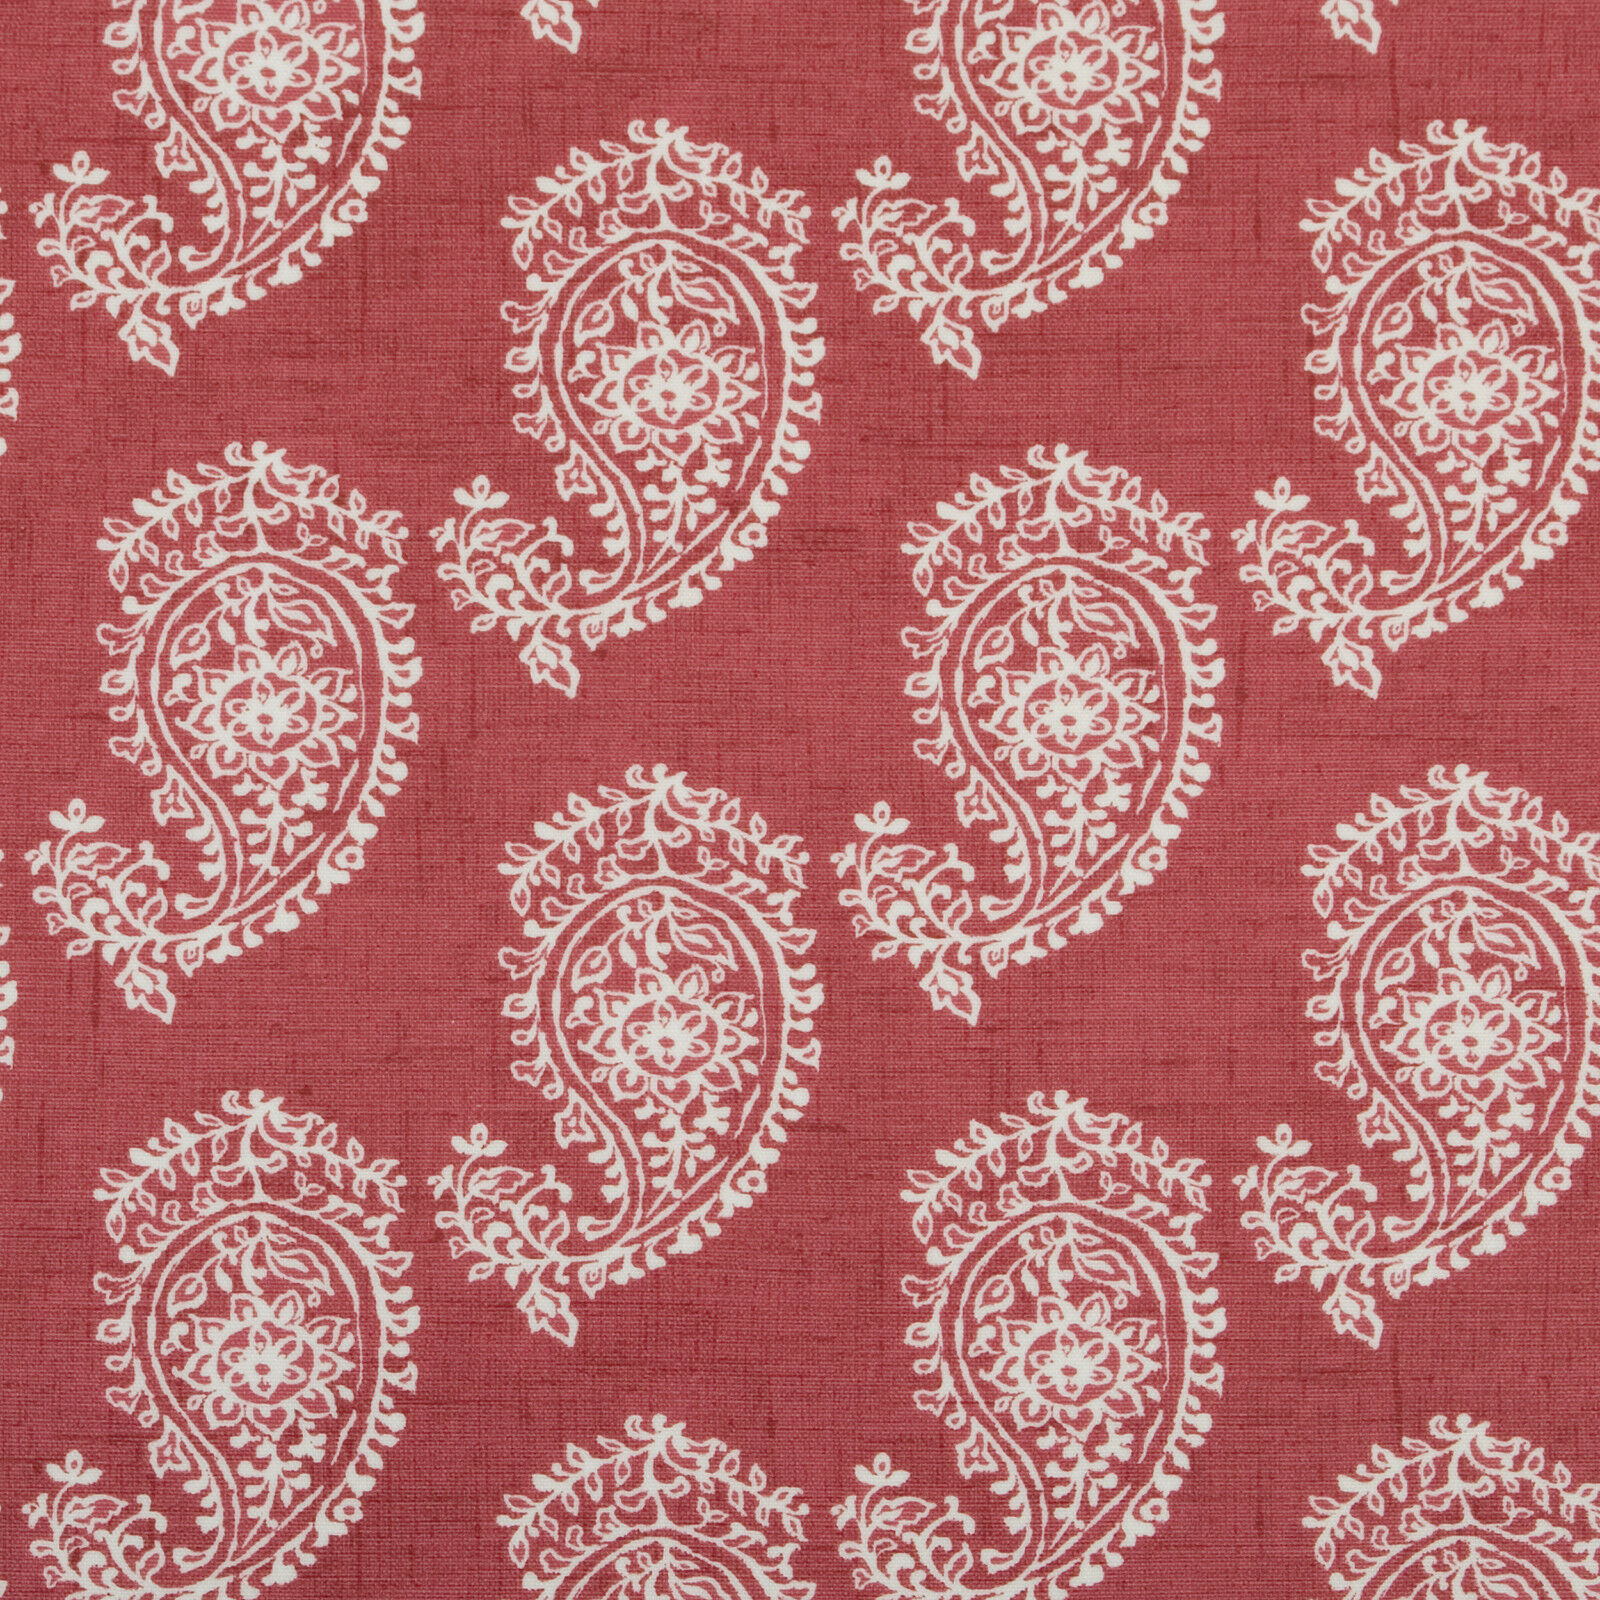 Raspberry Red Paisley Wipeclean PVC Oilcloth Tablecloth Multiple Sizes